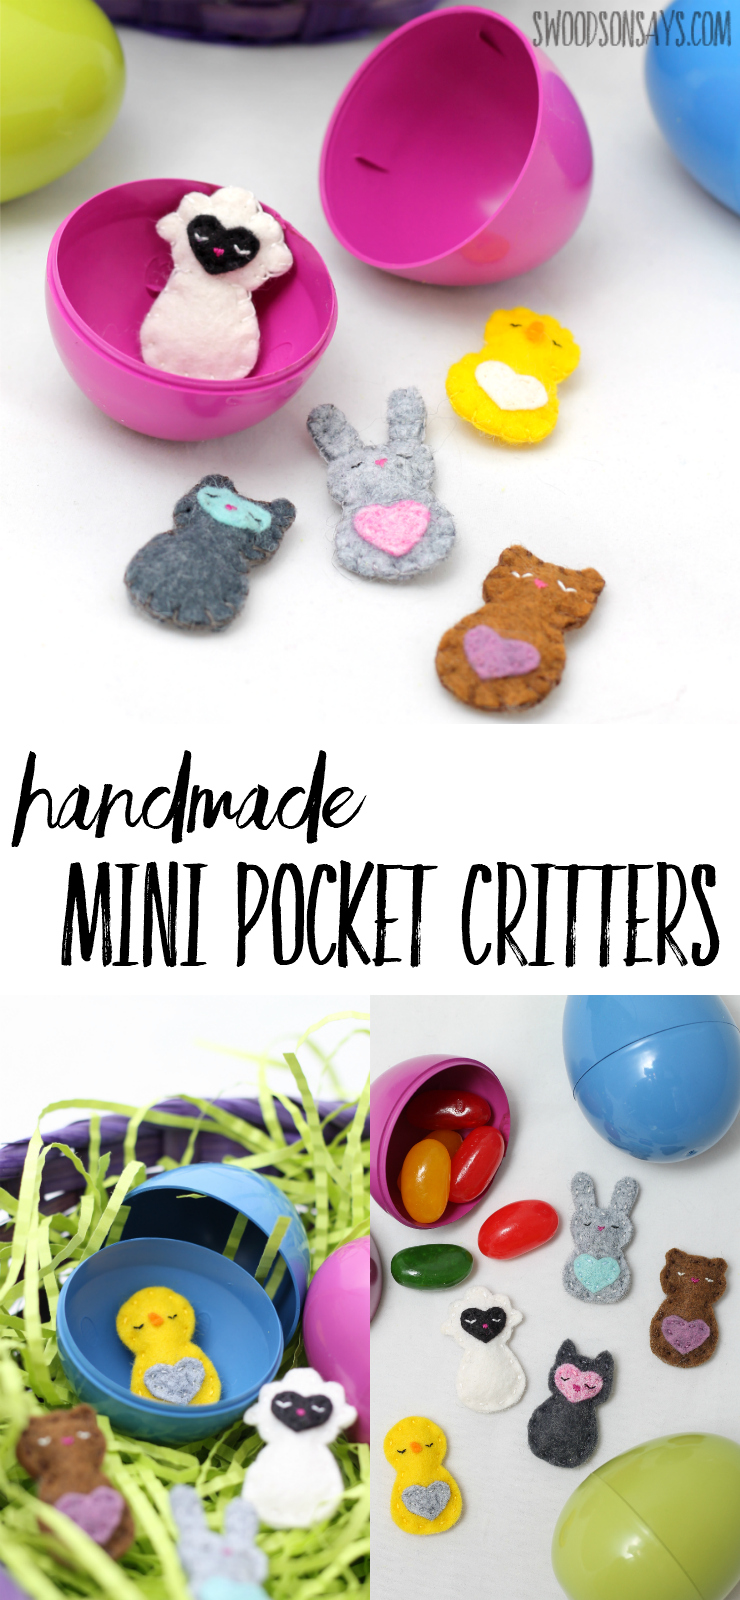 Looking for a fun felt project to sew? These mini pocket critters are teeny tiny, perfect for slipping into Easter eggs or into little pockets; they're all hand sewn and super sweet. A unique idea for handmade Easter egg fillers that aren't candy!